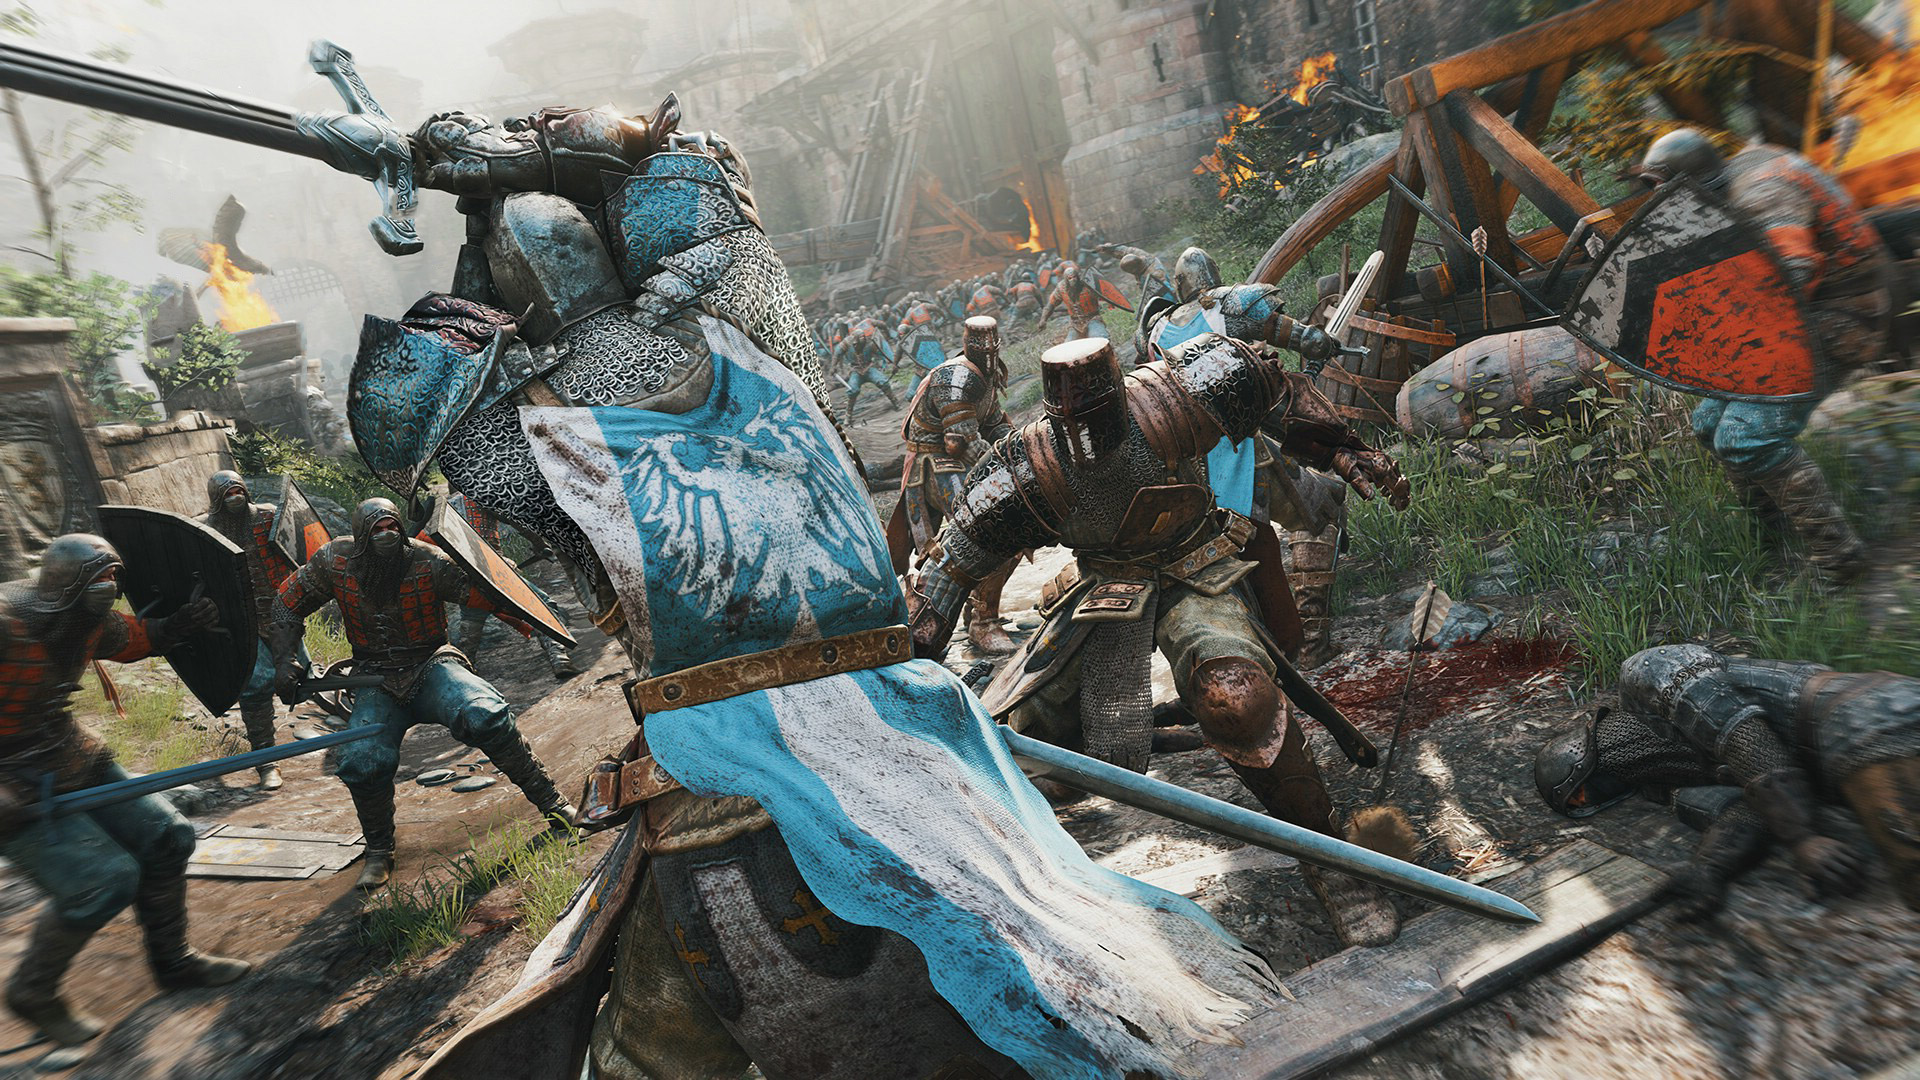 For Honor Wallpaper in 1920x1080